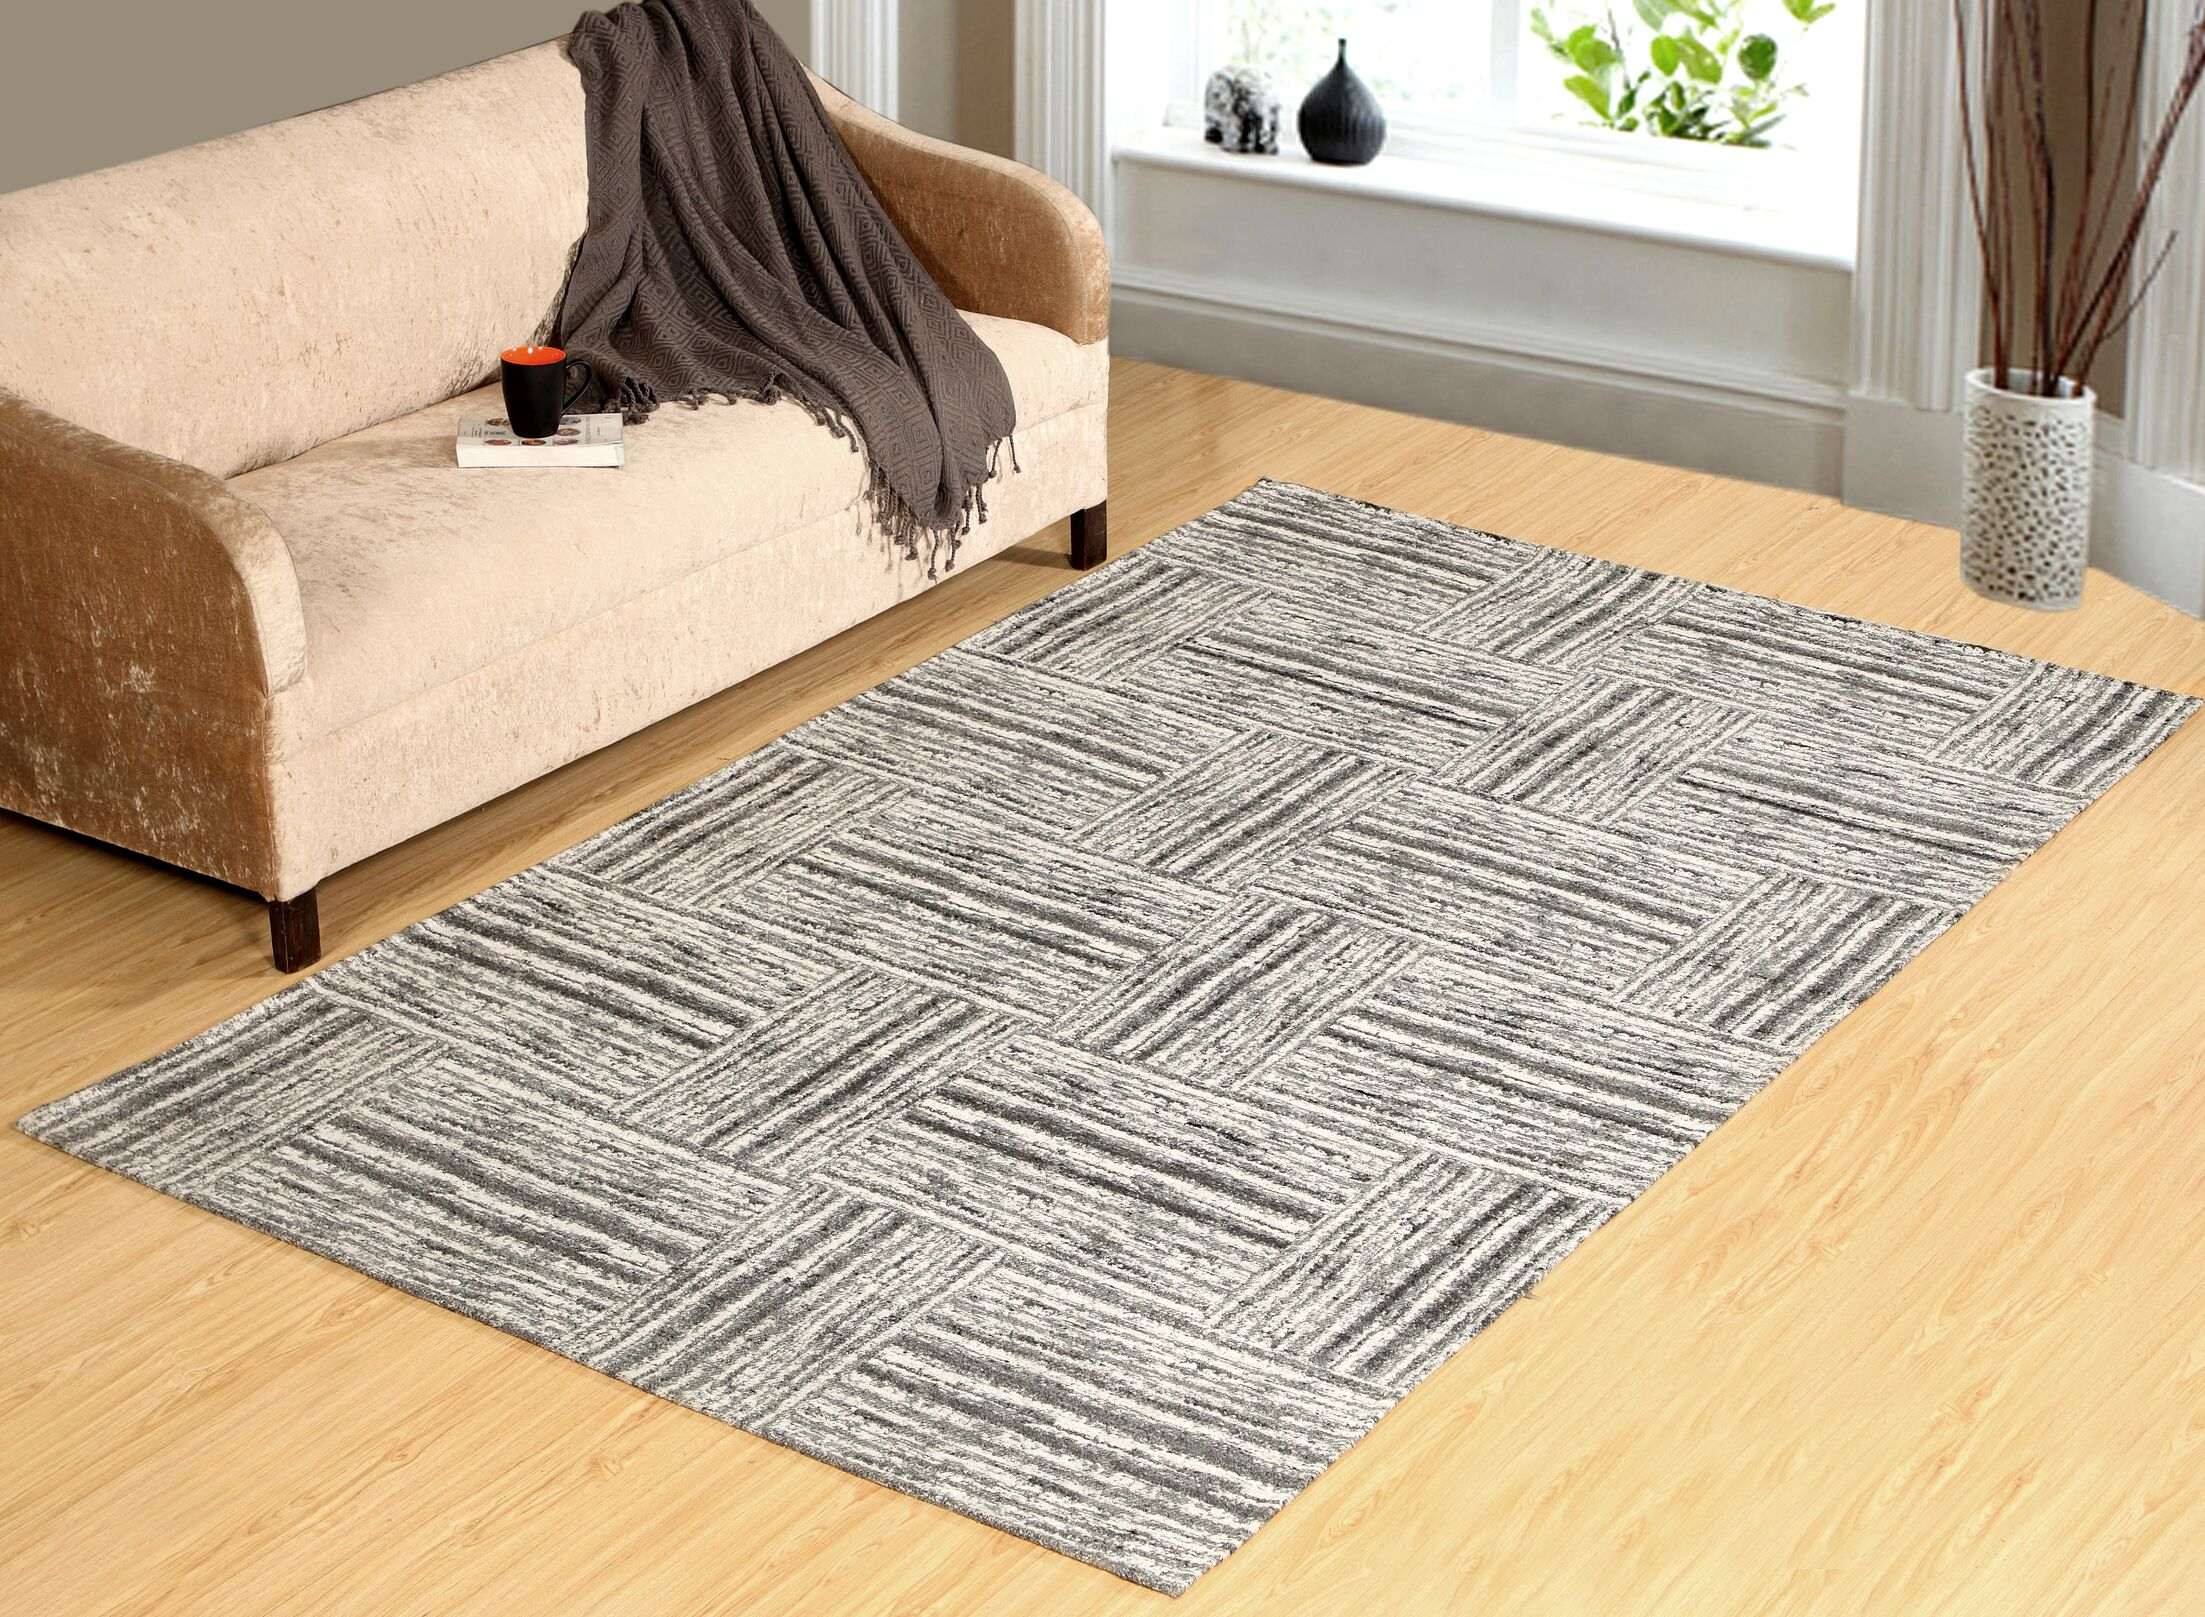 Kozak Hand-Tufted Gray Indoor/Outdoor Use Area Rug Rug Size: Runner 2' x 7'6